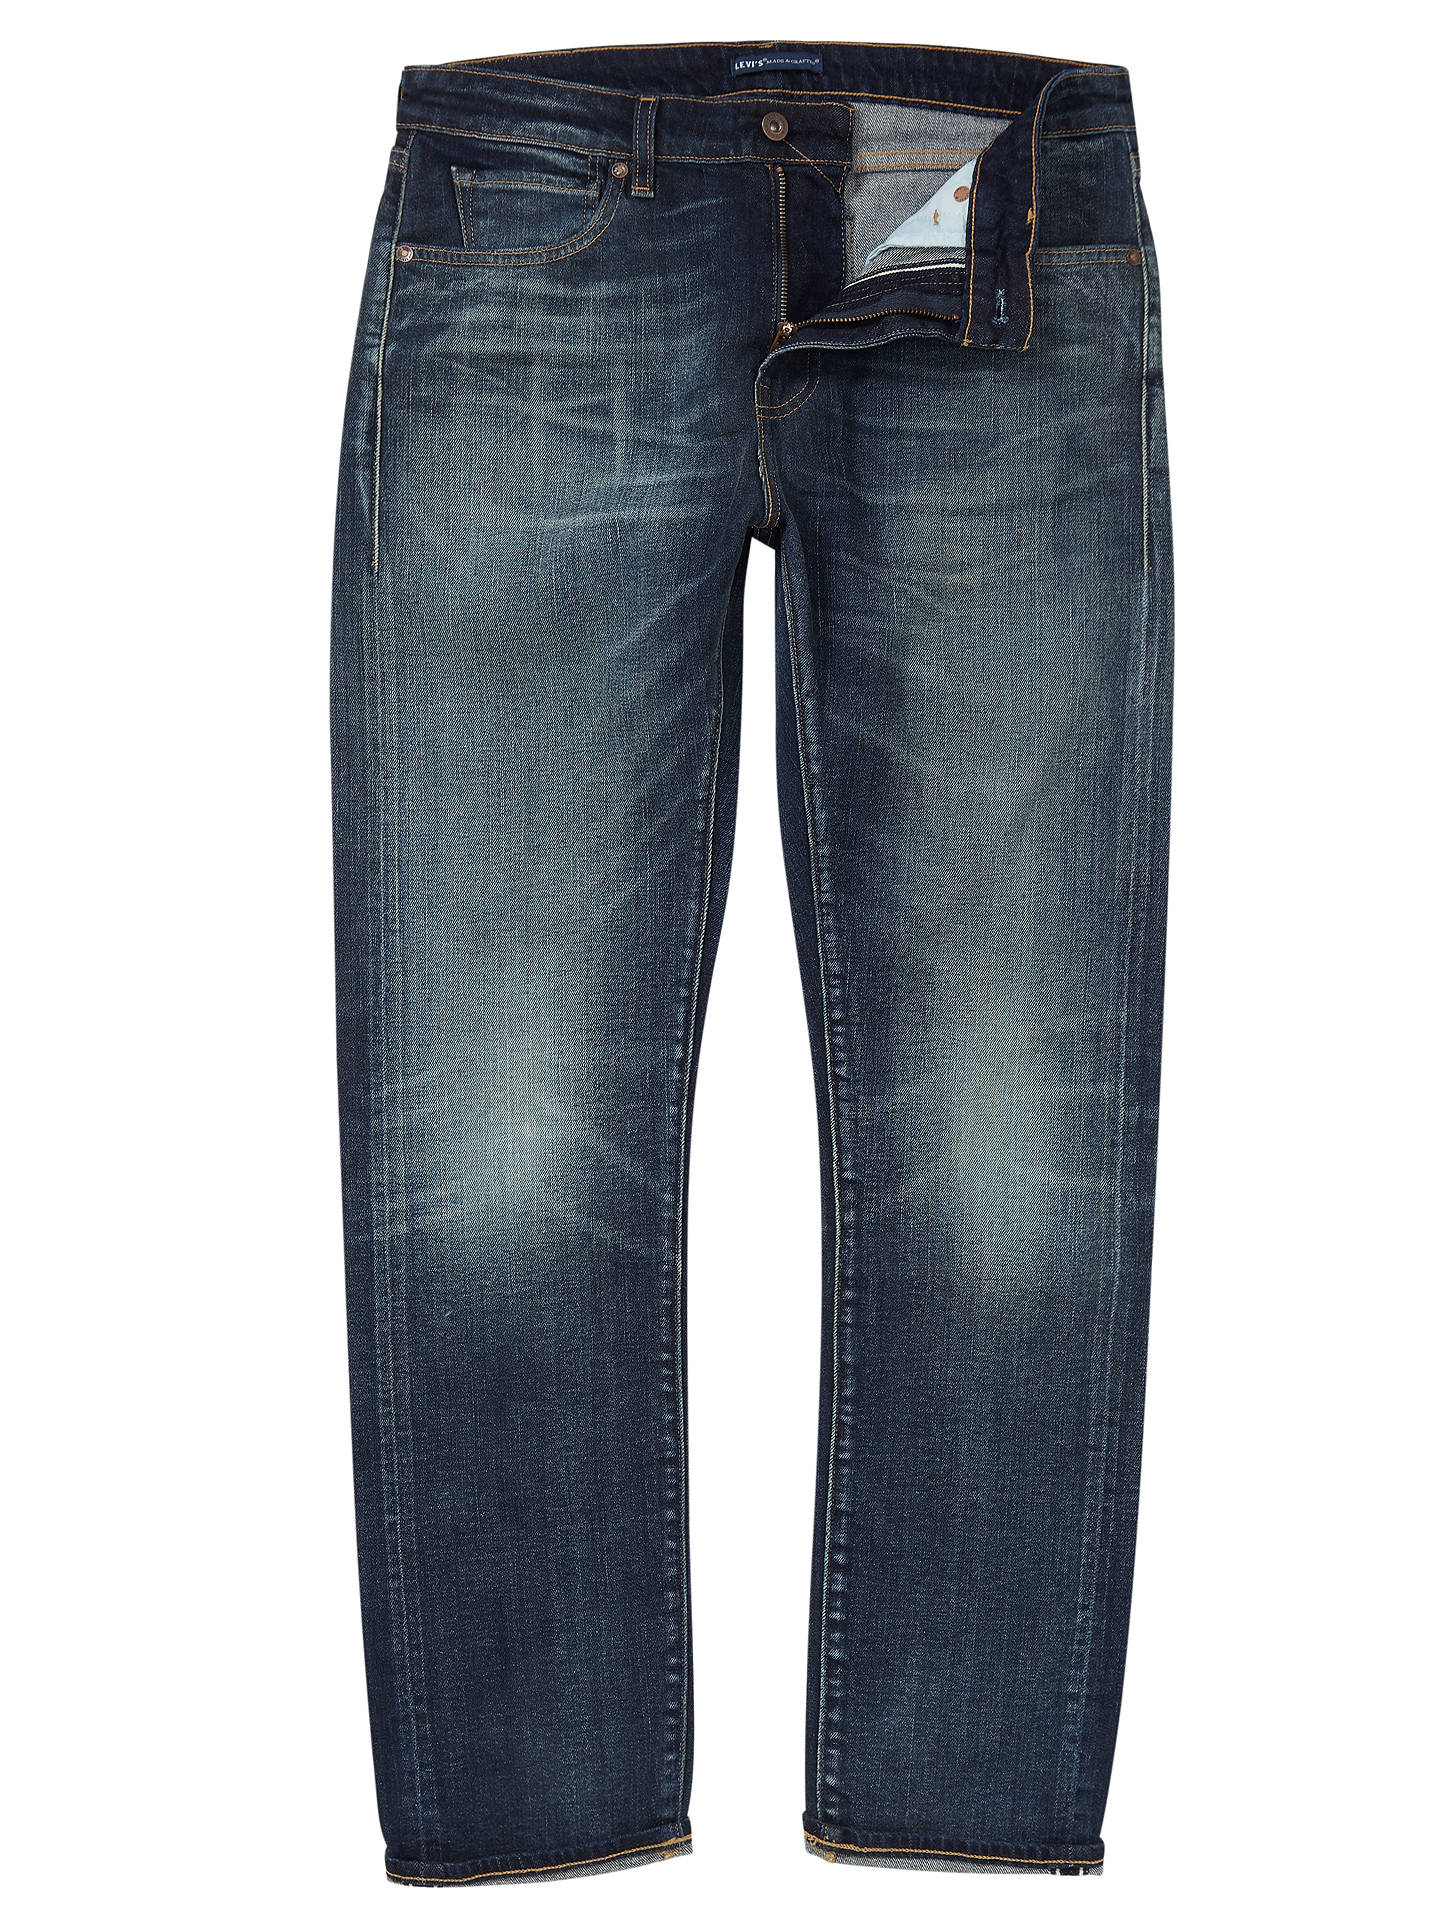 33f4bffabf2 Buy Levi's Made & Crafted Tack Slim Selvedge Jeans, Maestra, 32R Online at  johnlewis ...